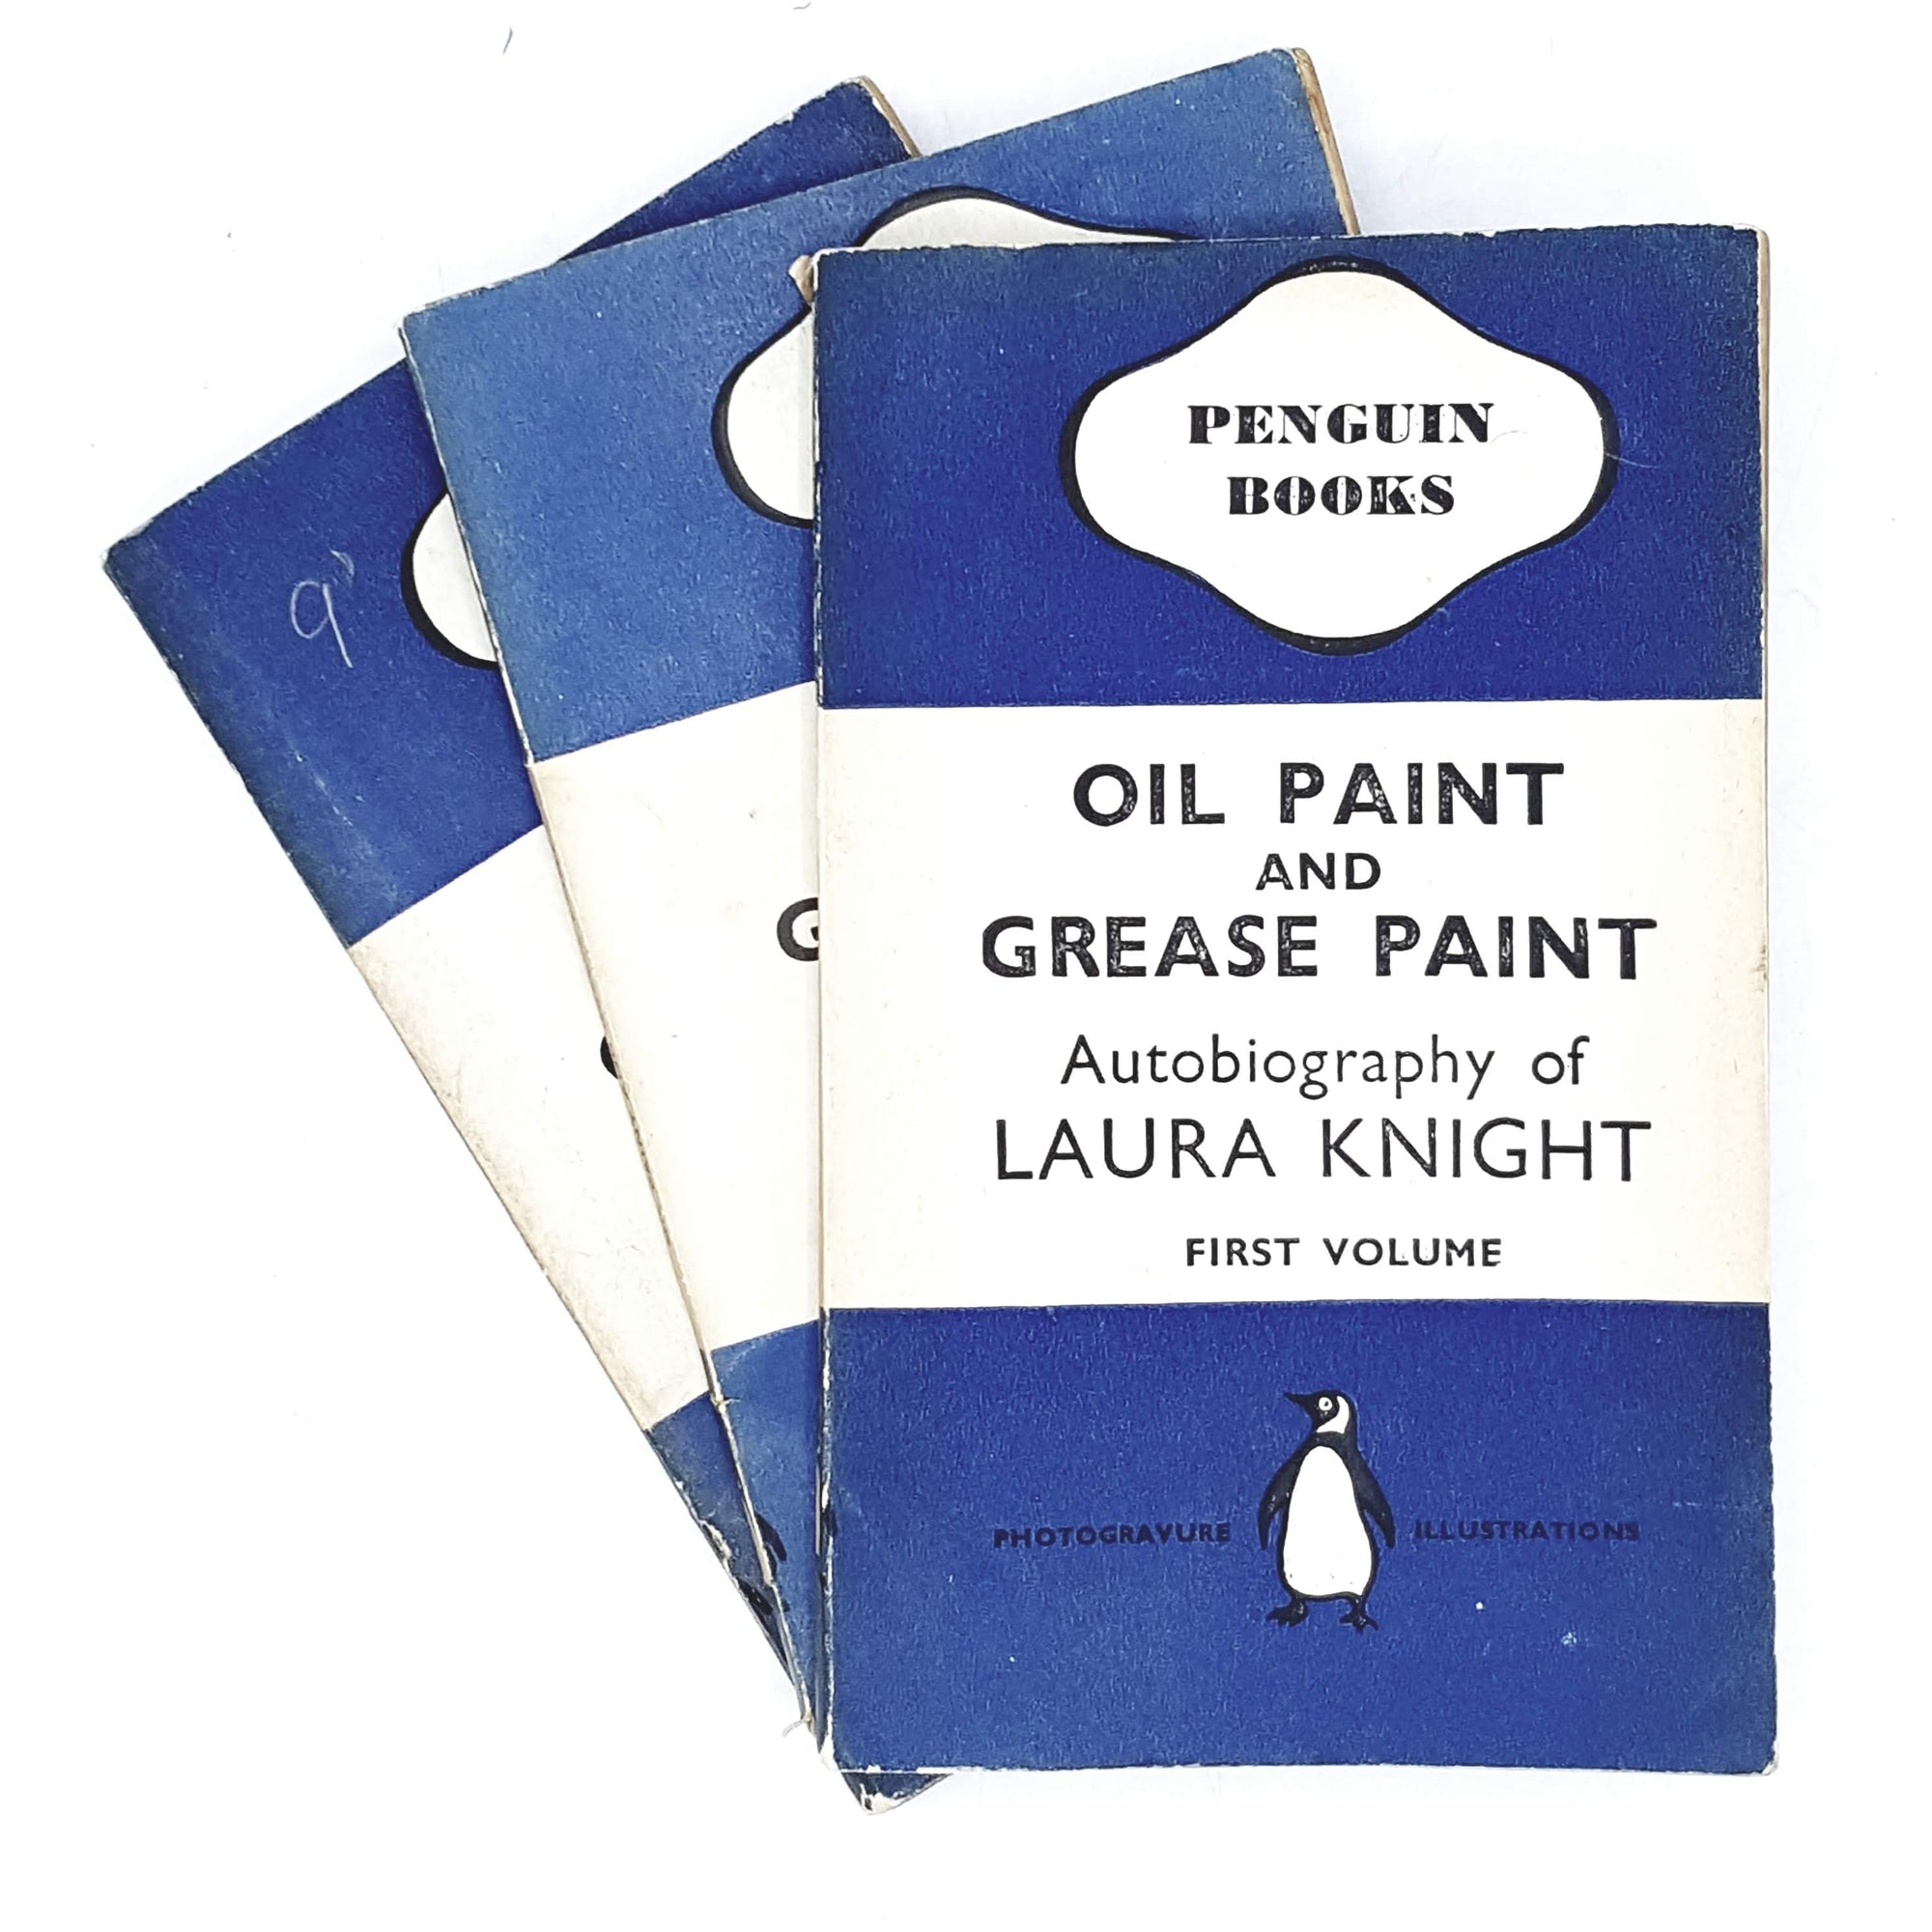 First Edition Penguin Collection Oil Paint and Grease Paint by Laura Knight 1941